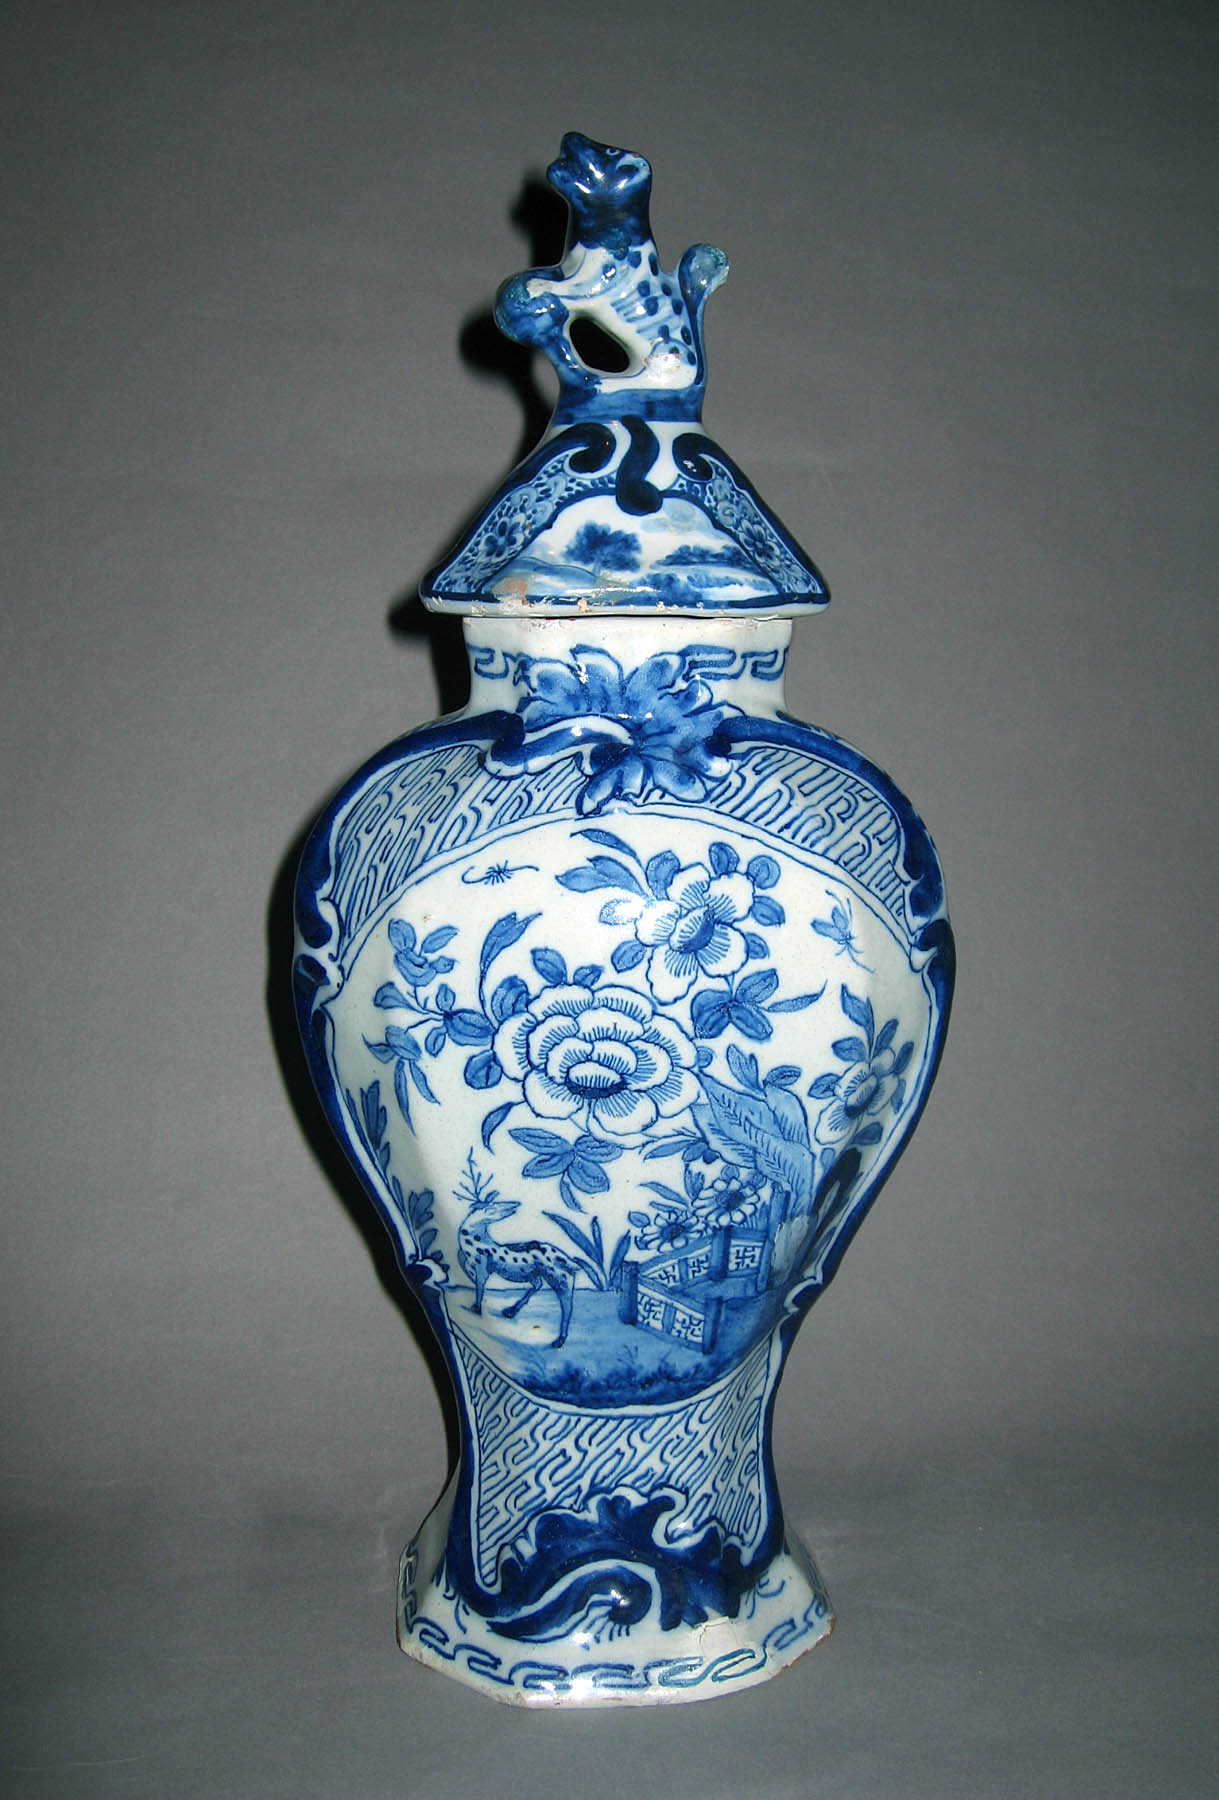 1960.0084.001 A, B Delft covered vase